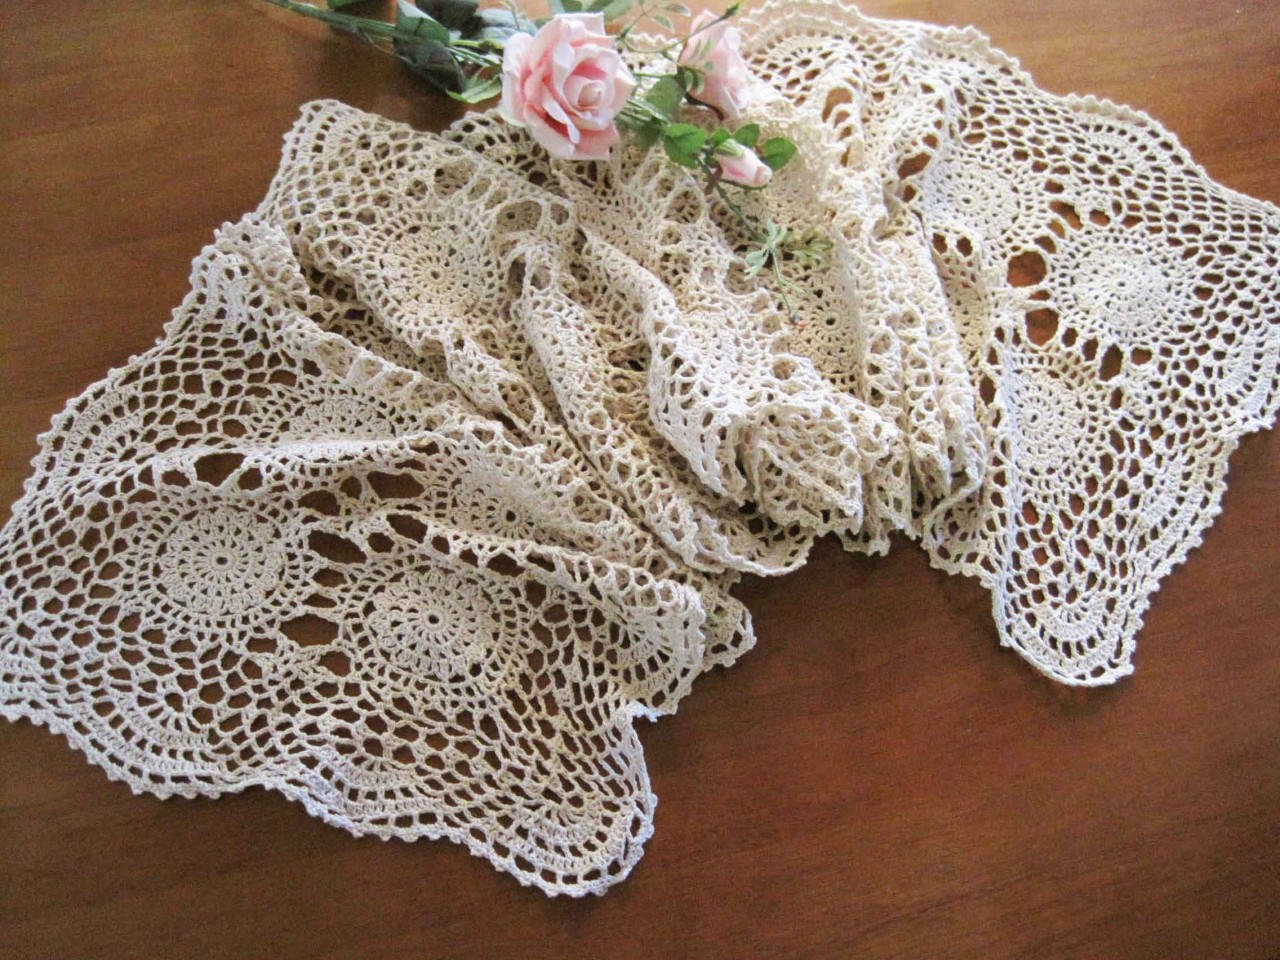 Crochet Patterns Table Runner : Crochet Lace Table Runner Pattern